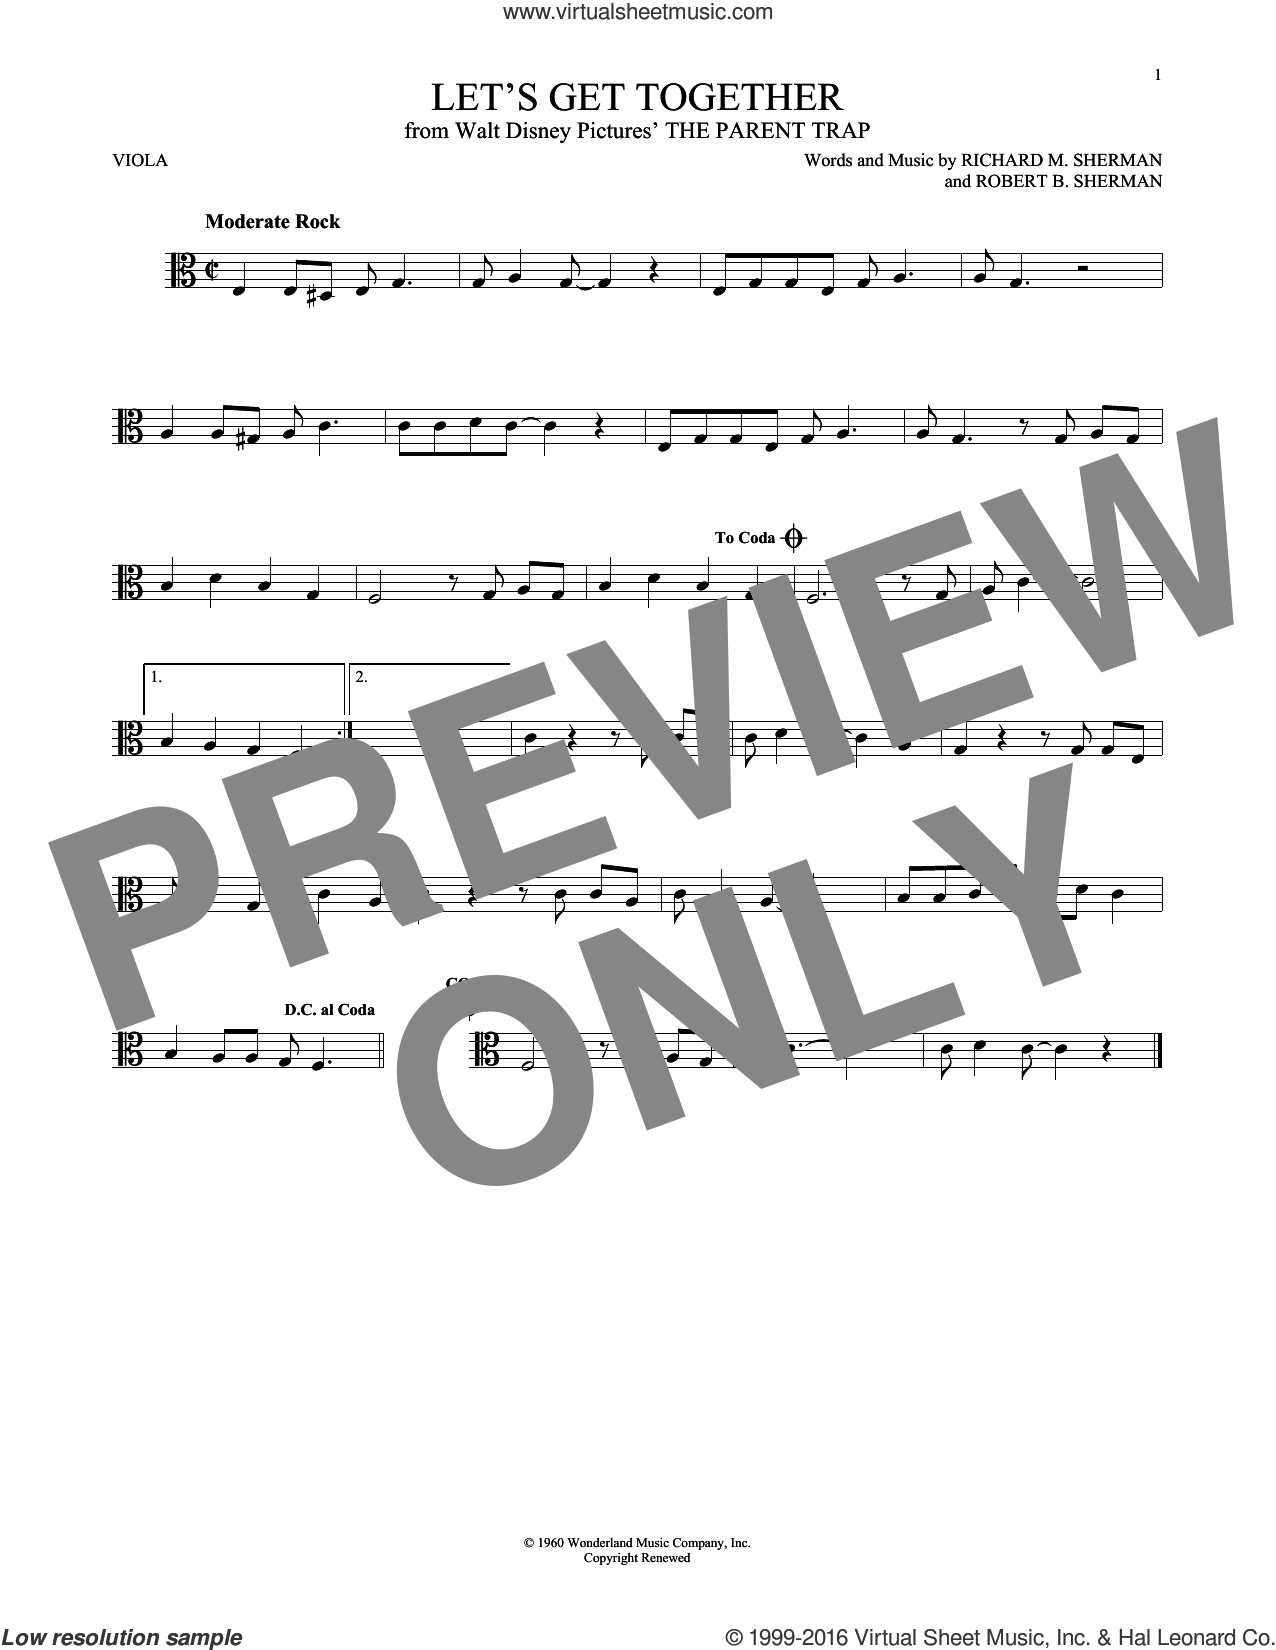 Let's Get Together sheet music for viola solo by Hayley Mills, Richard M. Sherman and Robert B. Sherman, intermediate skill level